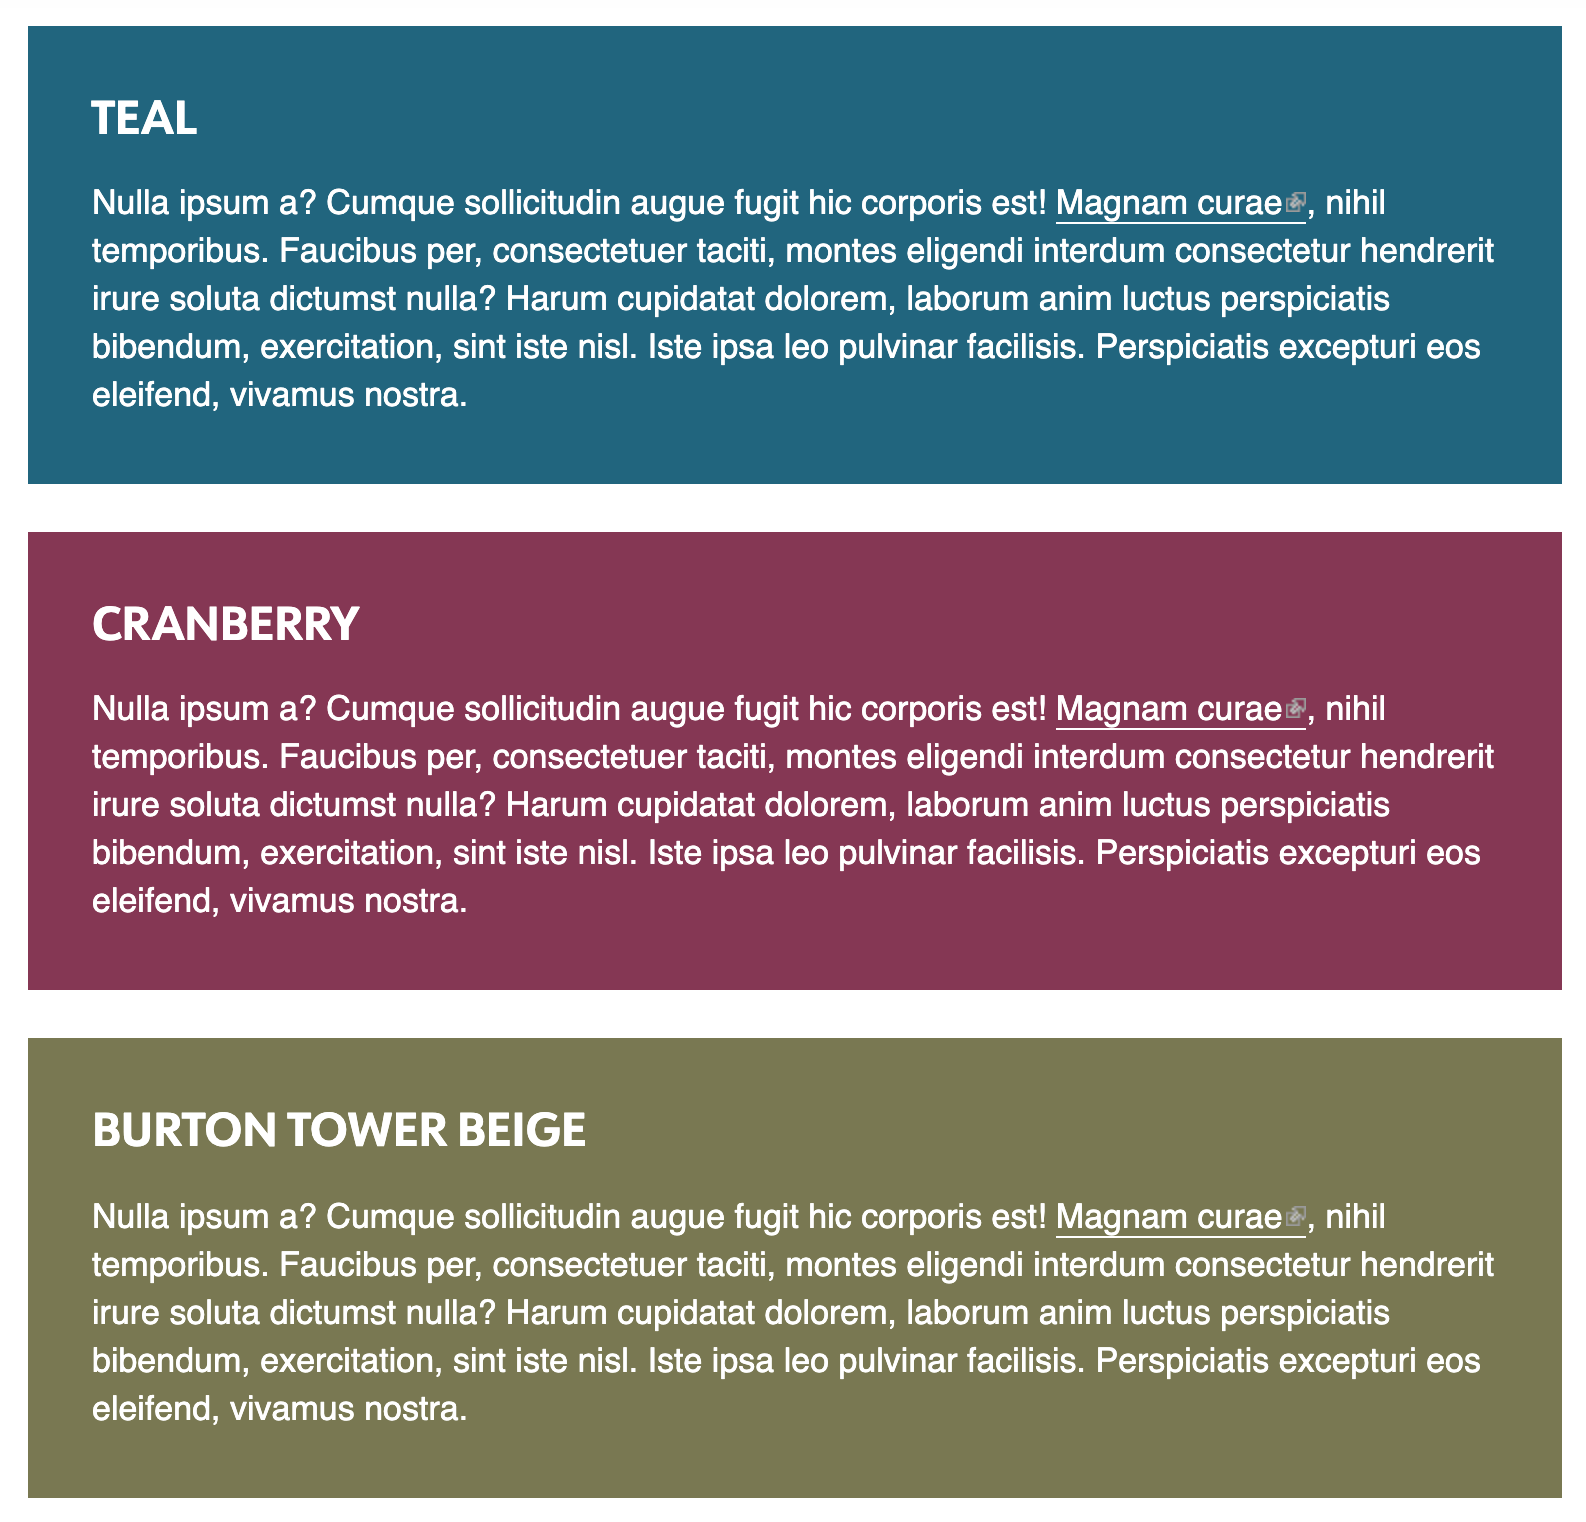 Sample image showing new colors (teal, cranberry, beige)